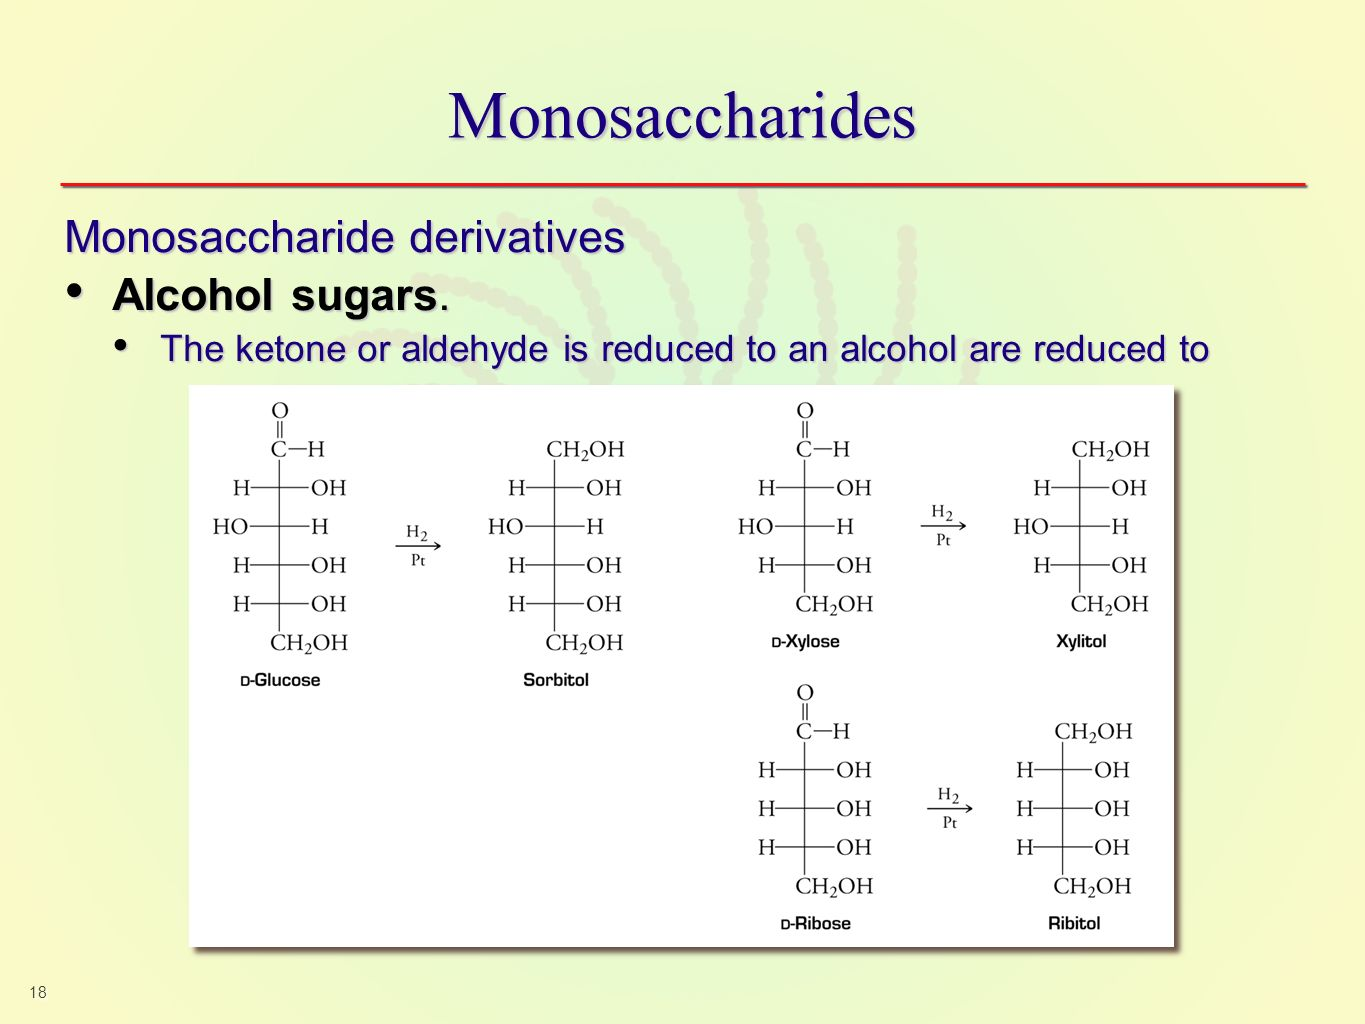 The two families of monosaccharides are aldose and ketoses ppt.